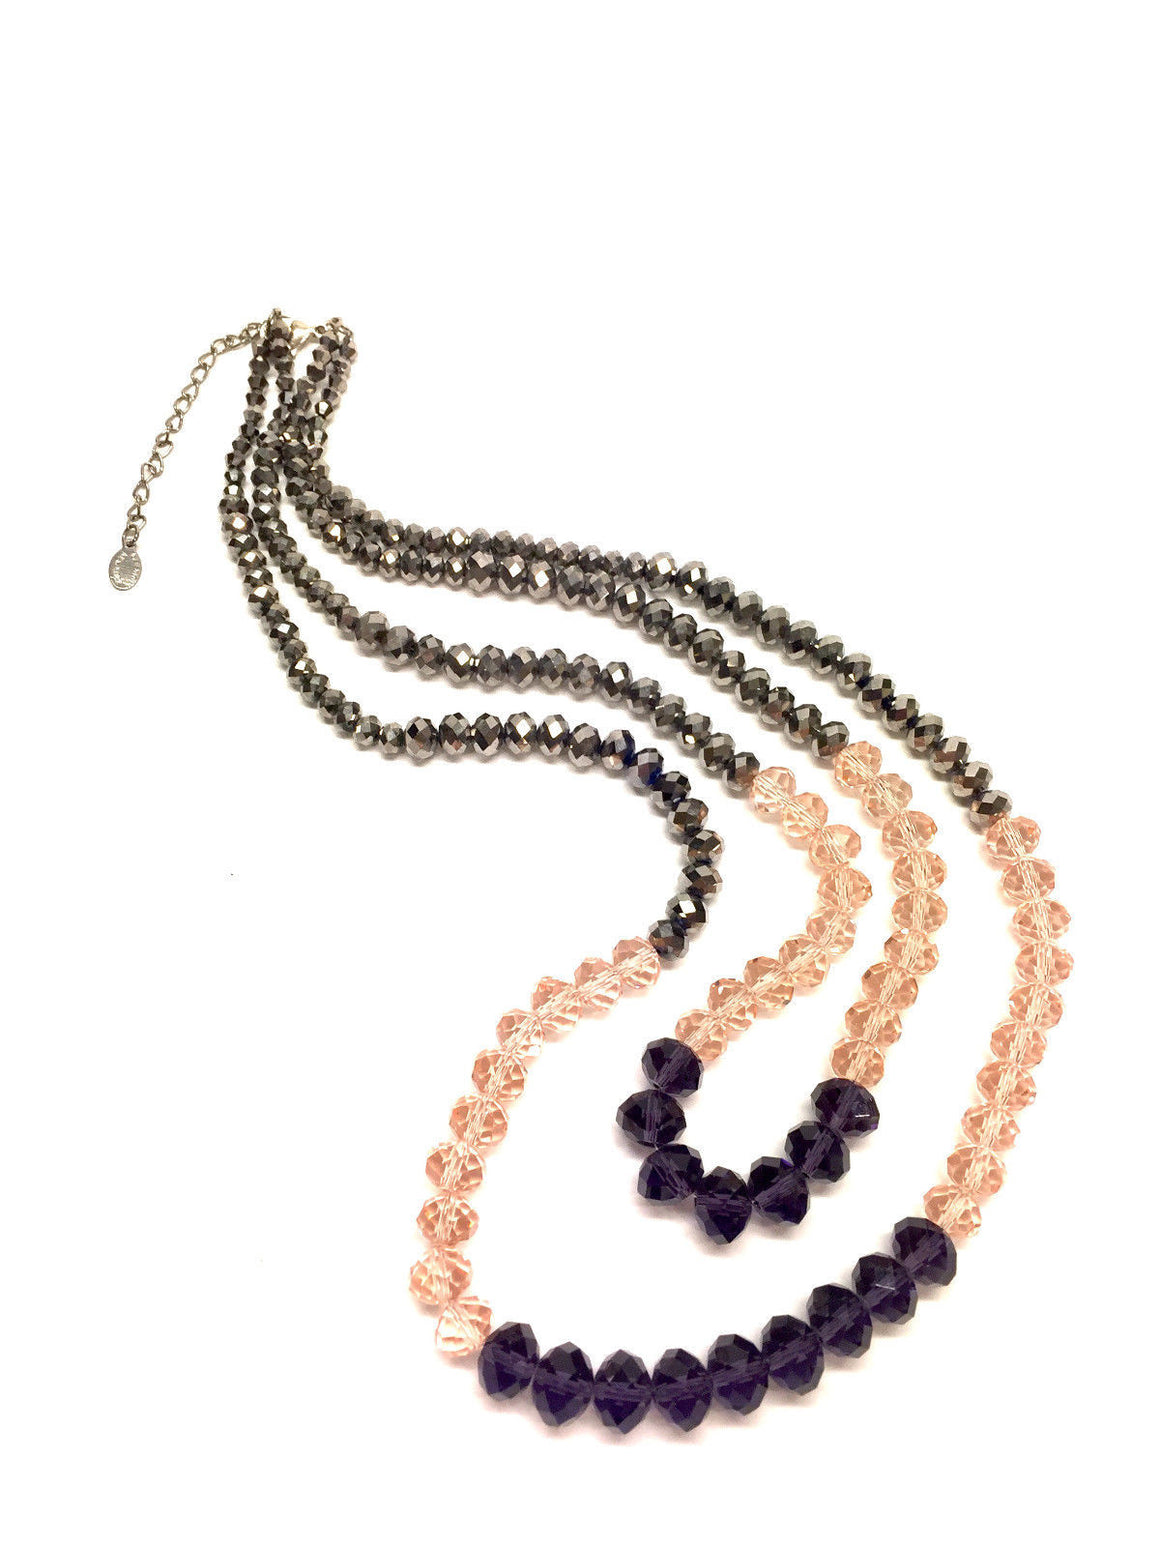 bisbiz.com ALI KHAN  New York   2-Strand Faceted Hematite Amethyst & Rose-Quartz Crystal Beads Necklace - Bis Luxury Resale